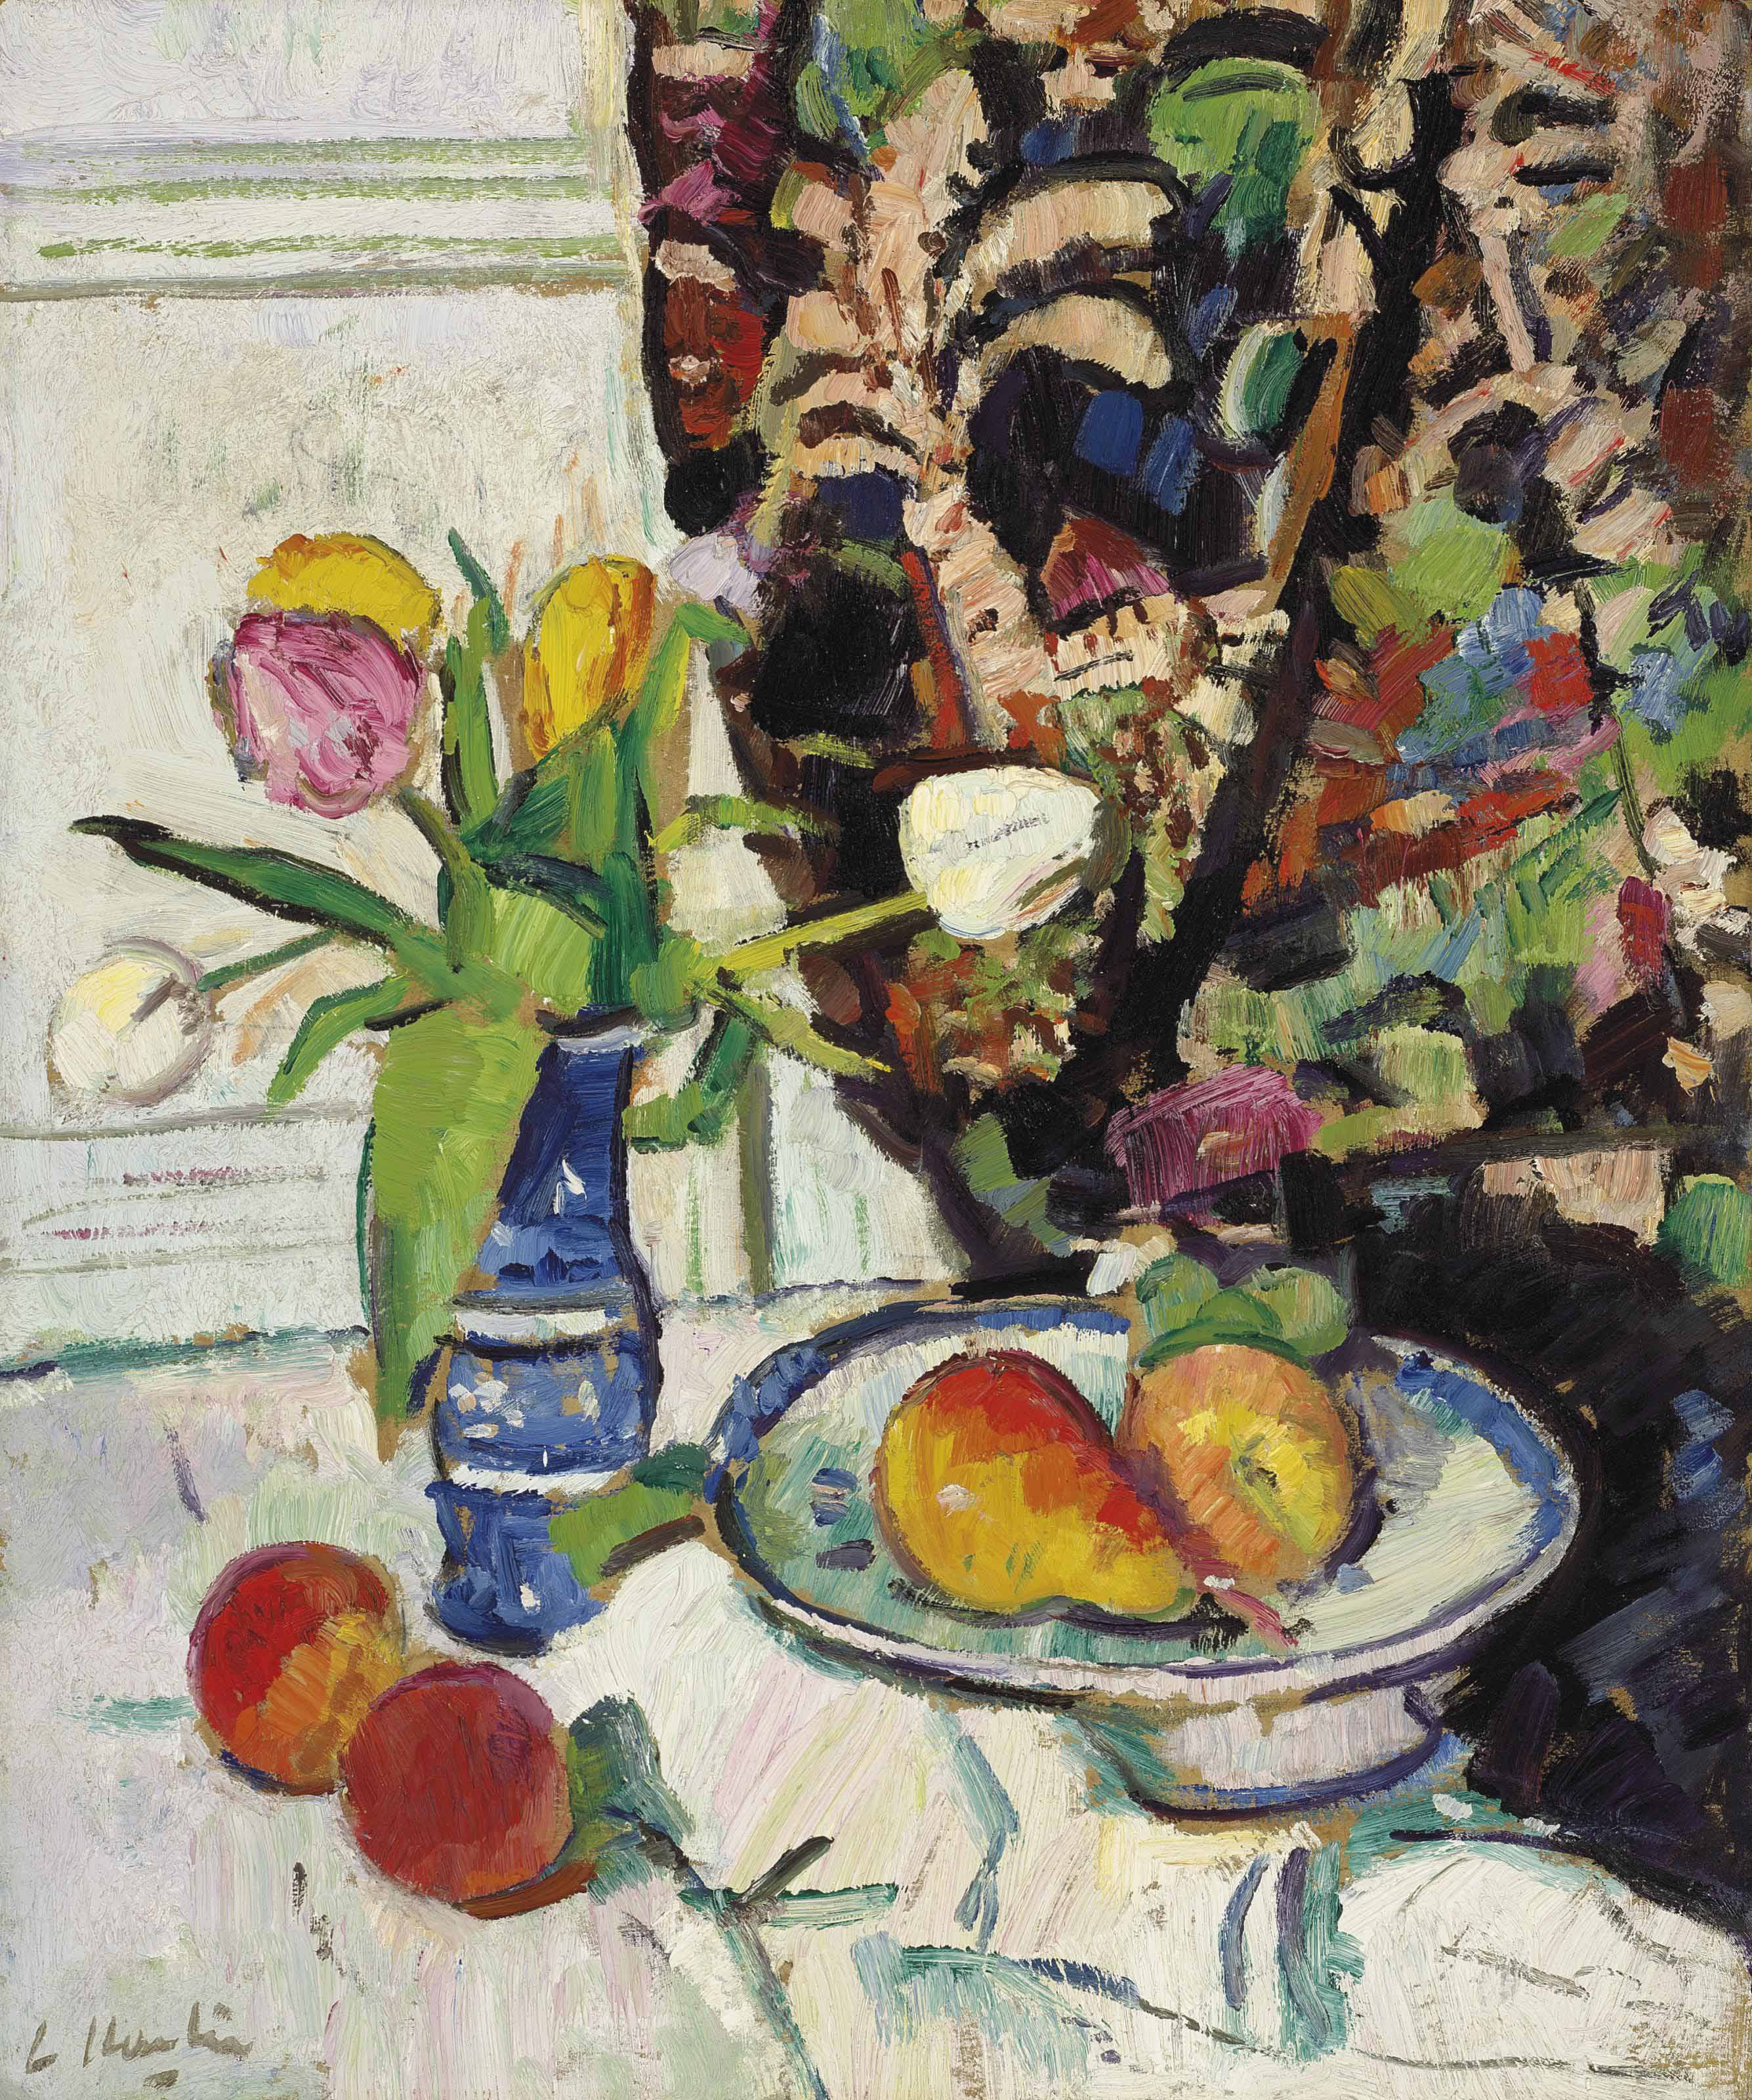 Still life with tulips and fruit